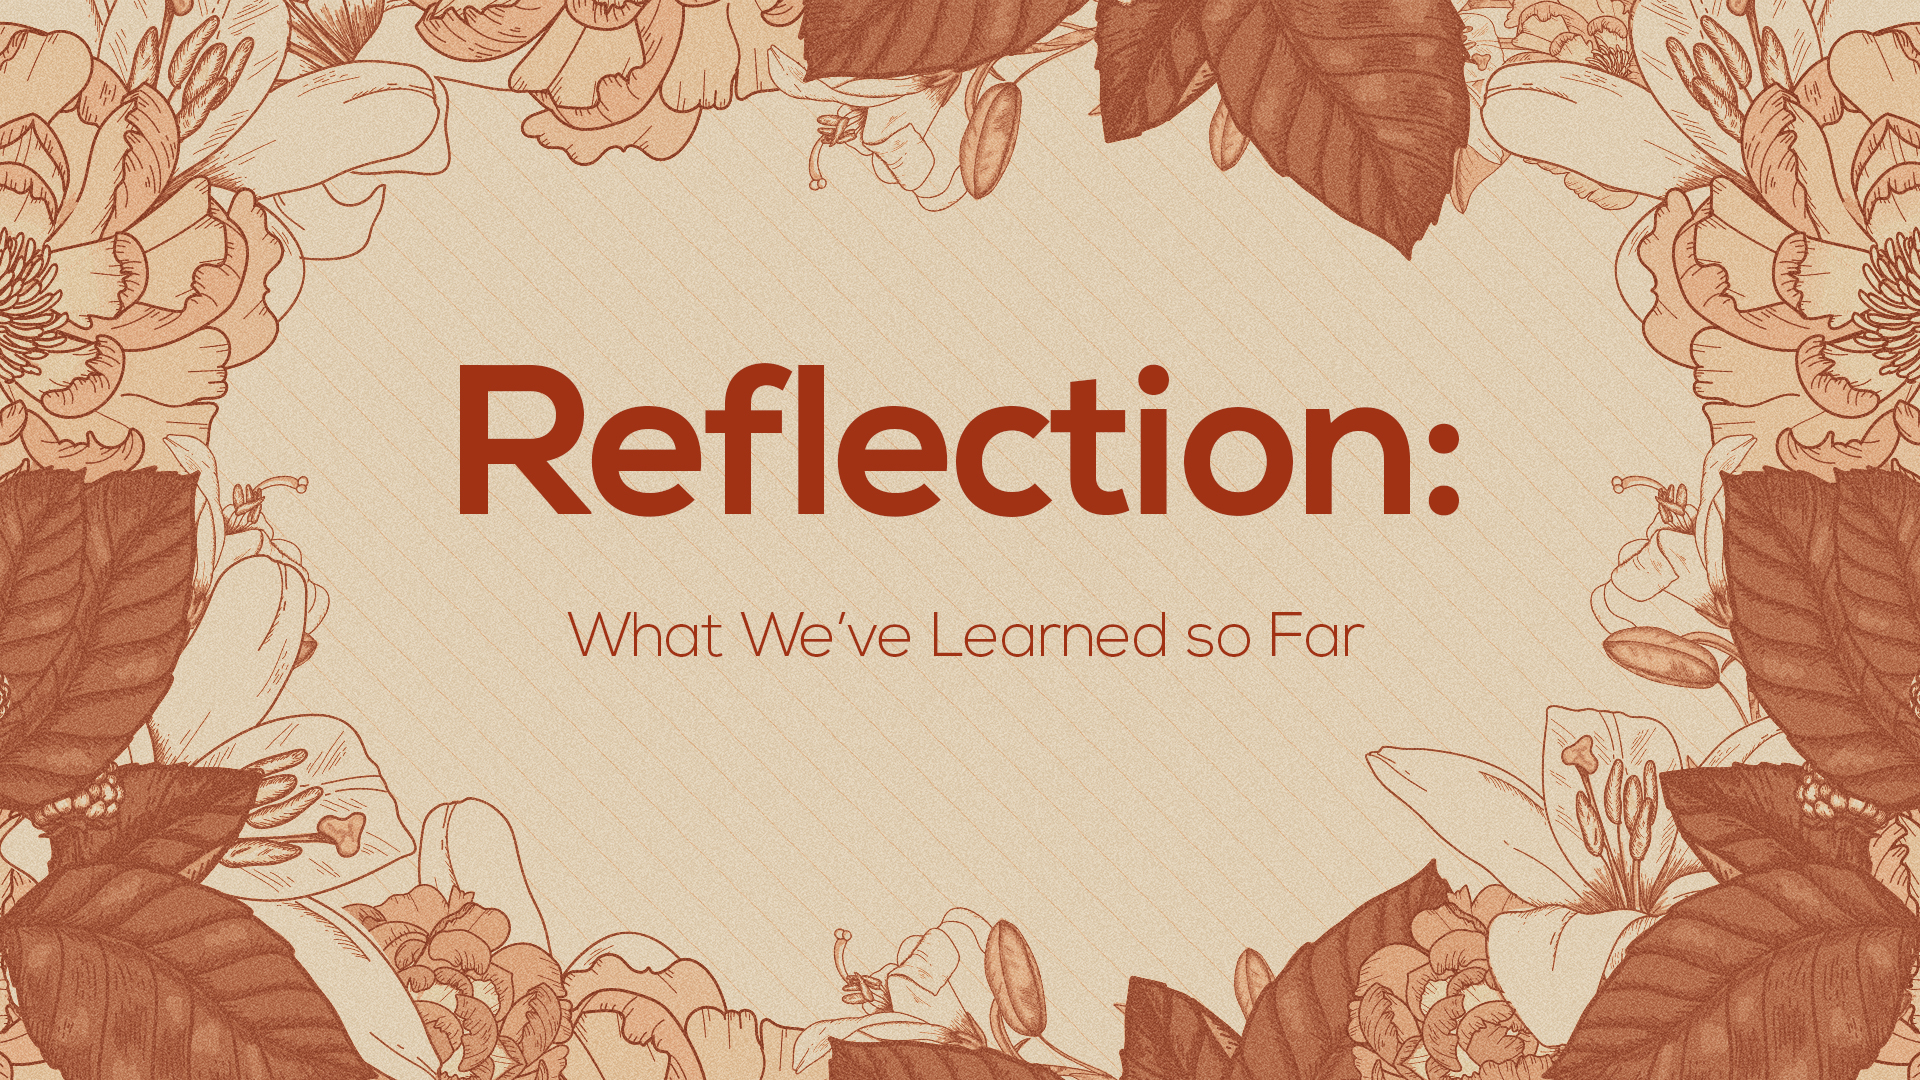 Reflection: What We've Learned So Far